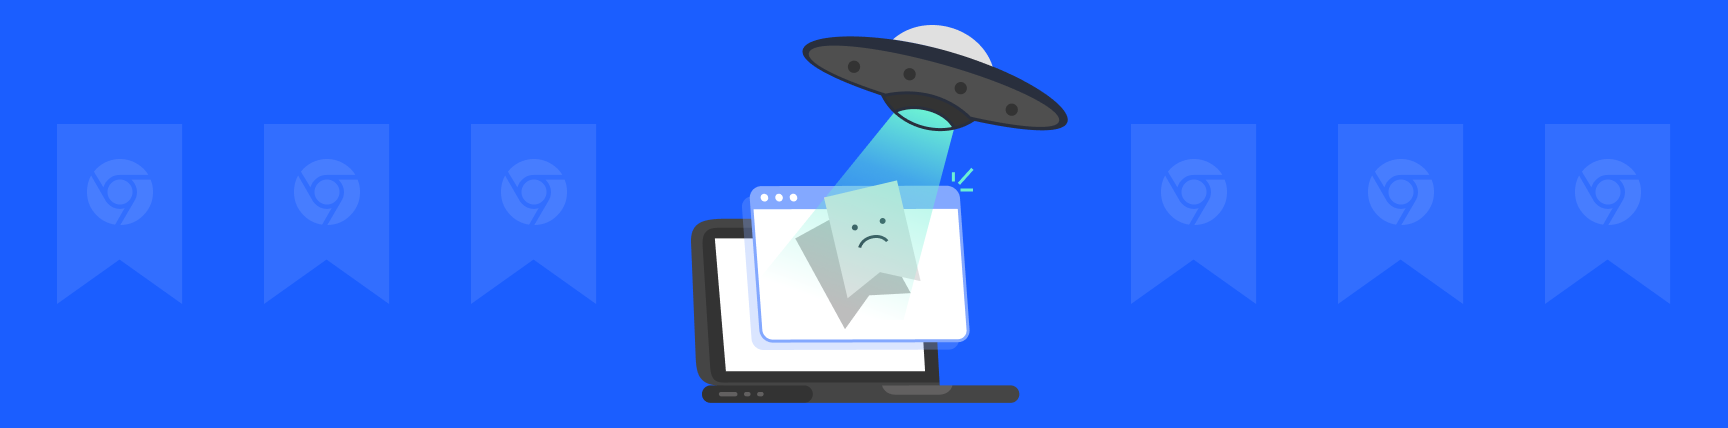 Illustration of Chrome bookmarks being abducted by an alien spaceship